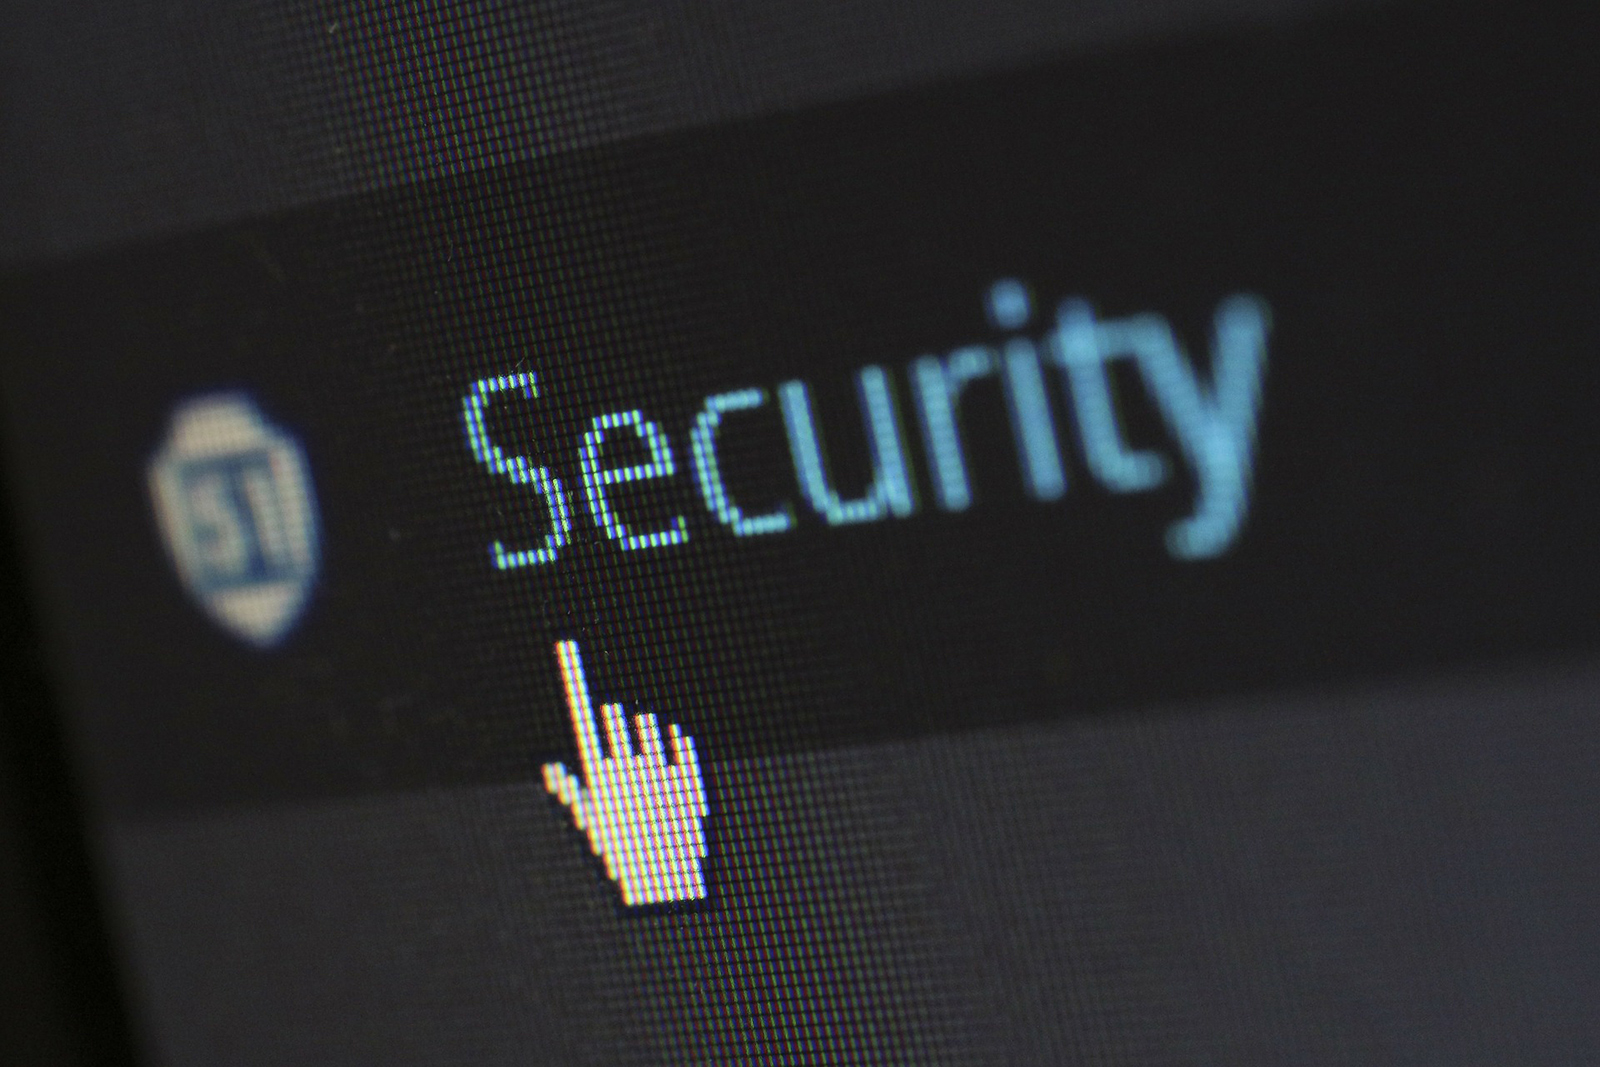 Image of mouse pointer clicking on a security button. Apple's differential privacy might be less private than we think.